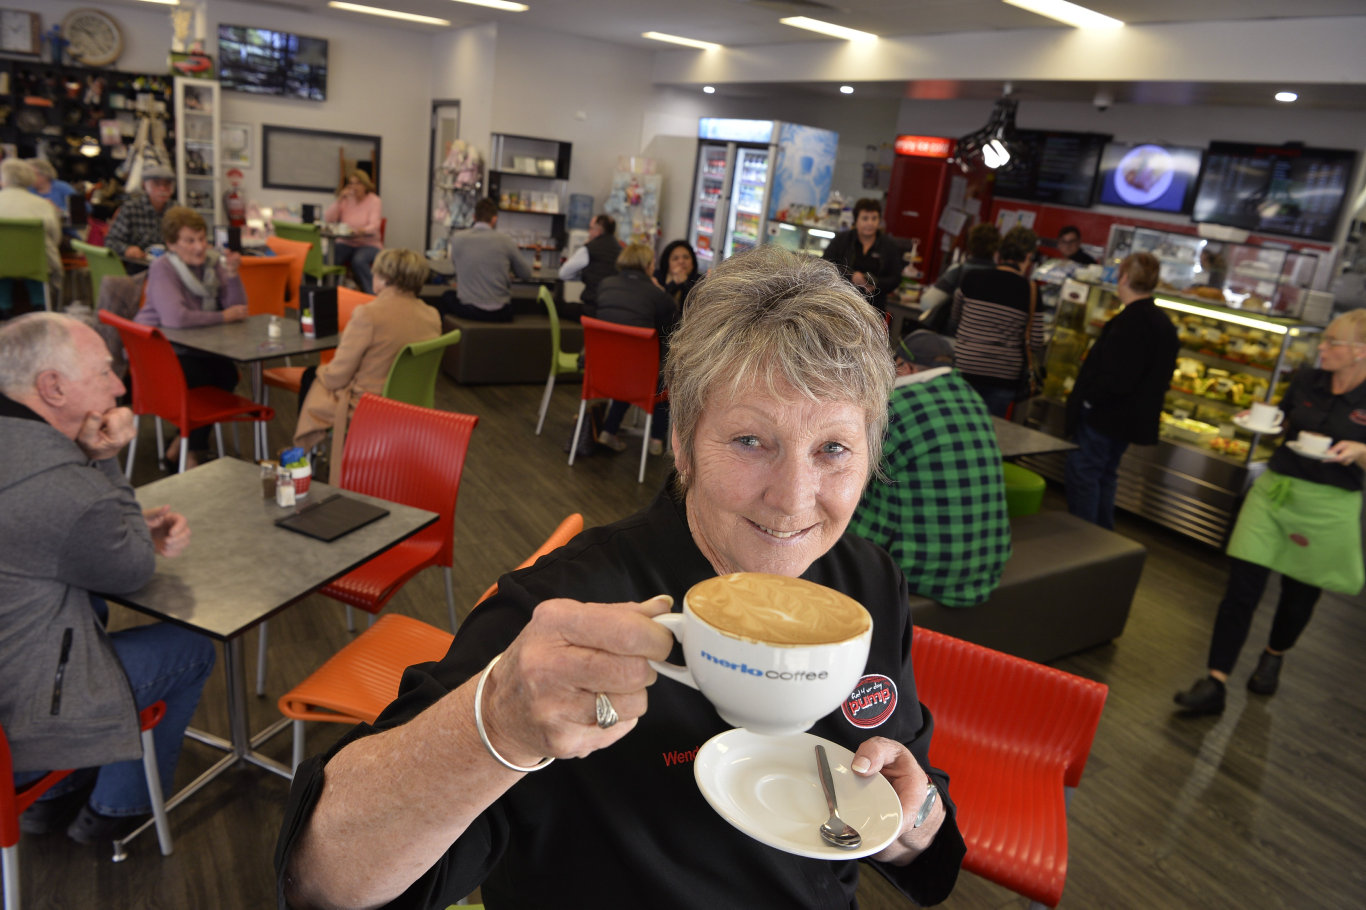 Pump manager Wendy Swan is proud for Pump@123 to be named Toowoomba's best coffee shop in The Chronicle's 2019 Best of Toowomba series, Tuesday, June 25, 2019.